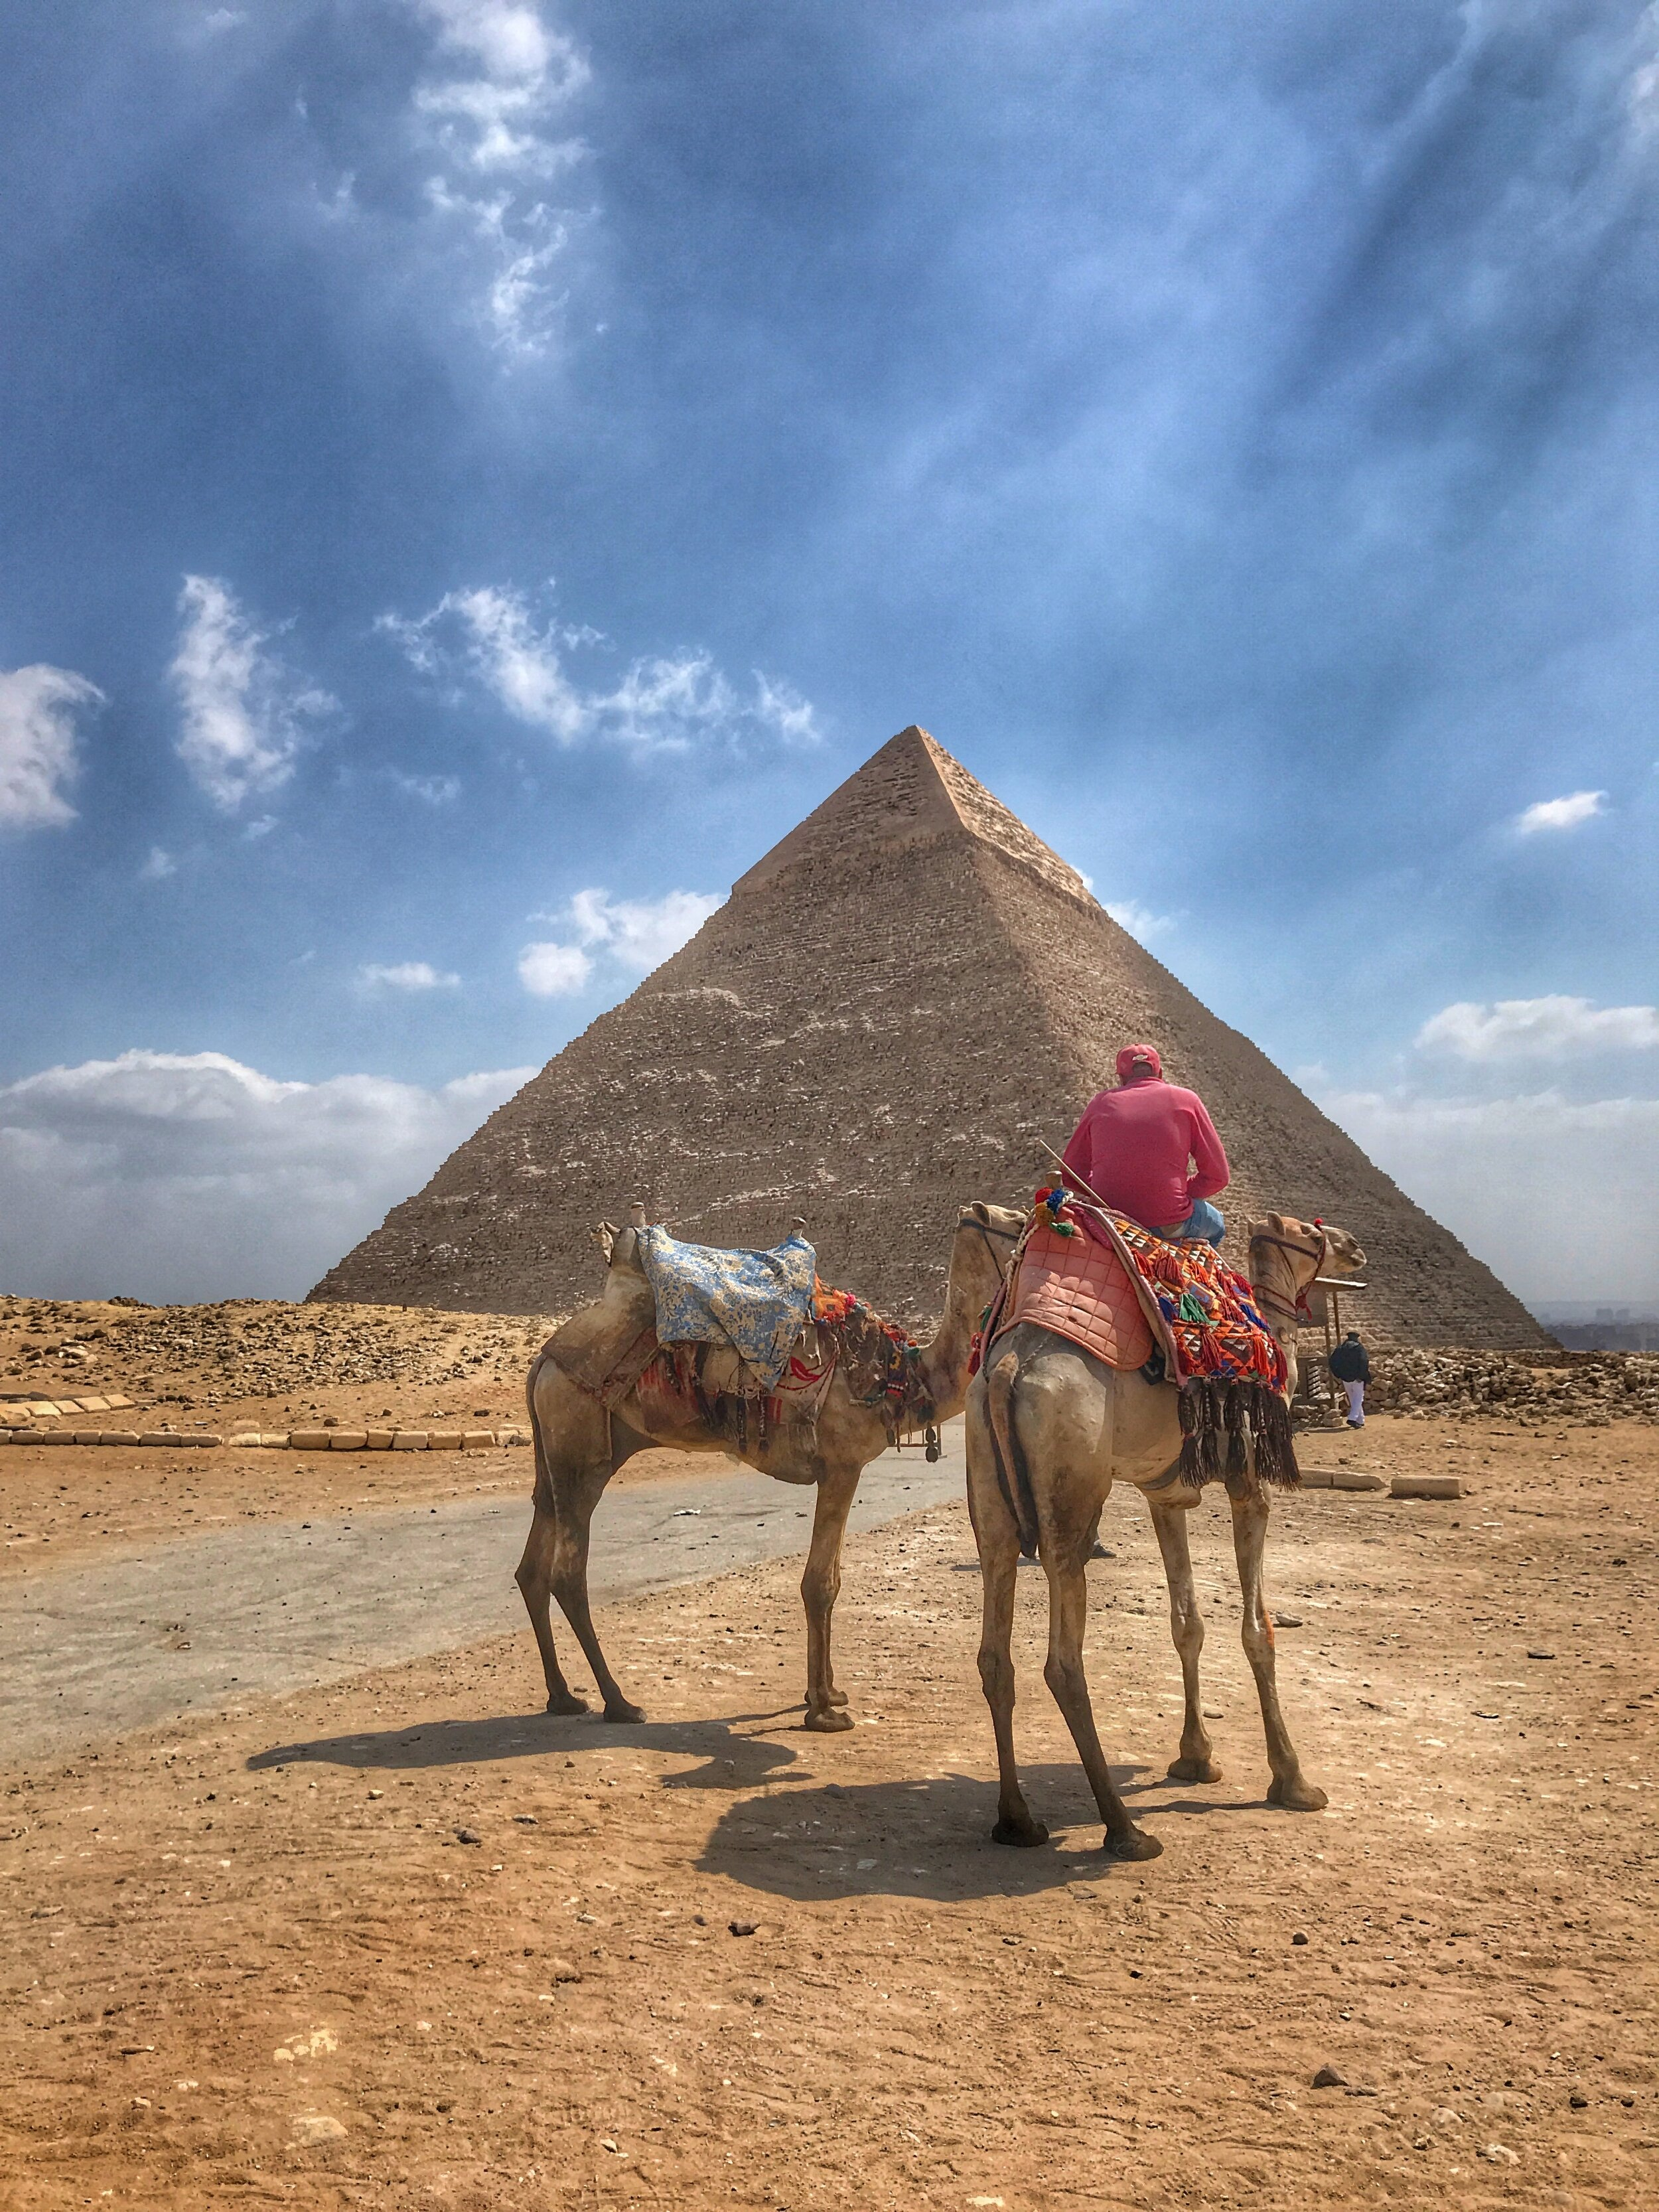 We opted not to take a camel ride, but it's a good way to see more of the Giza area